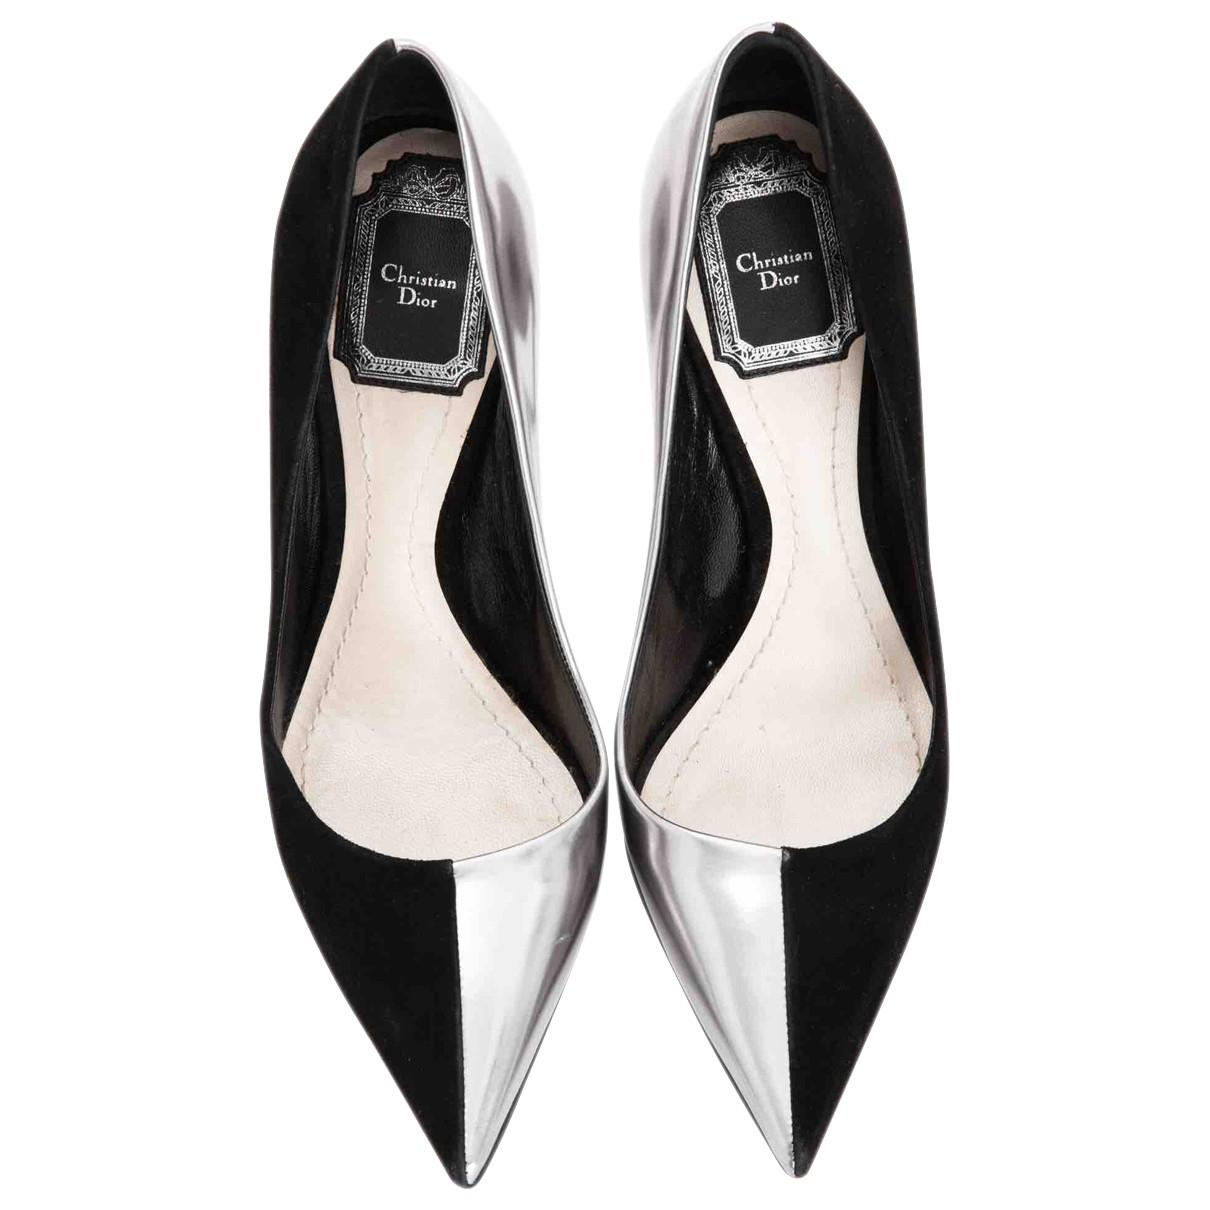 e7378abfc3c Lyst - Dior Pre-owned Leather Heels in Black